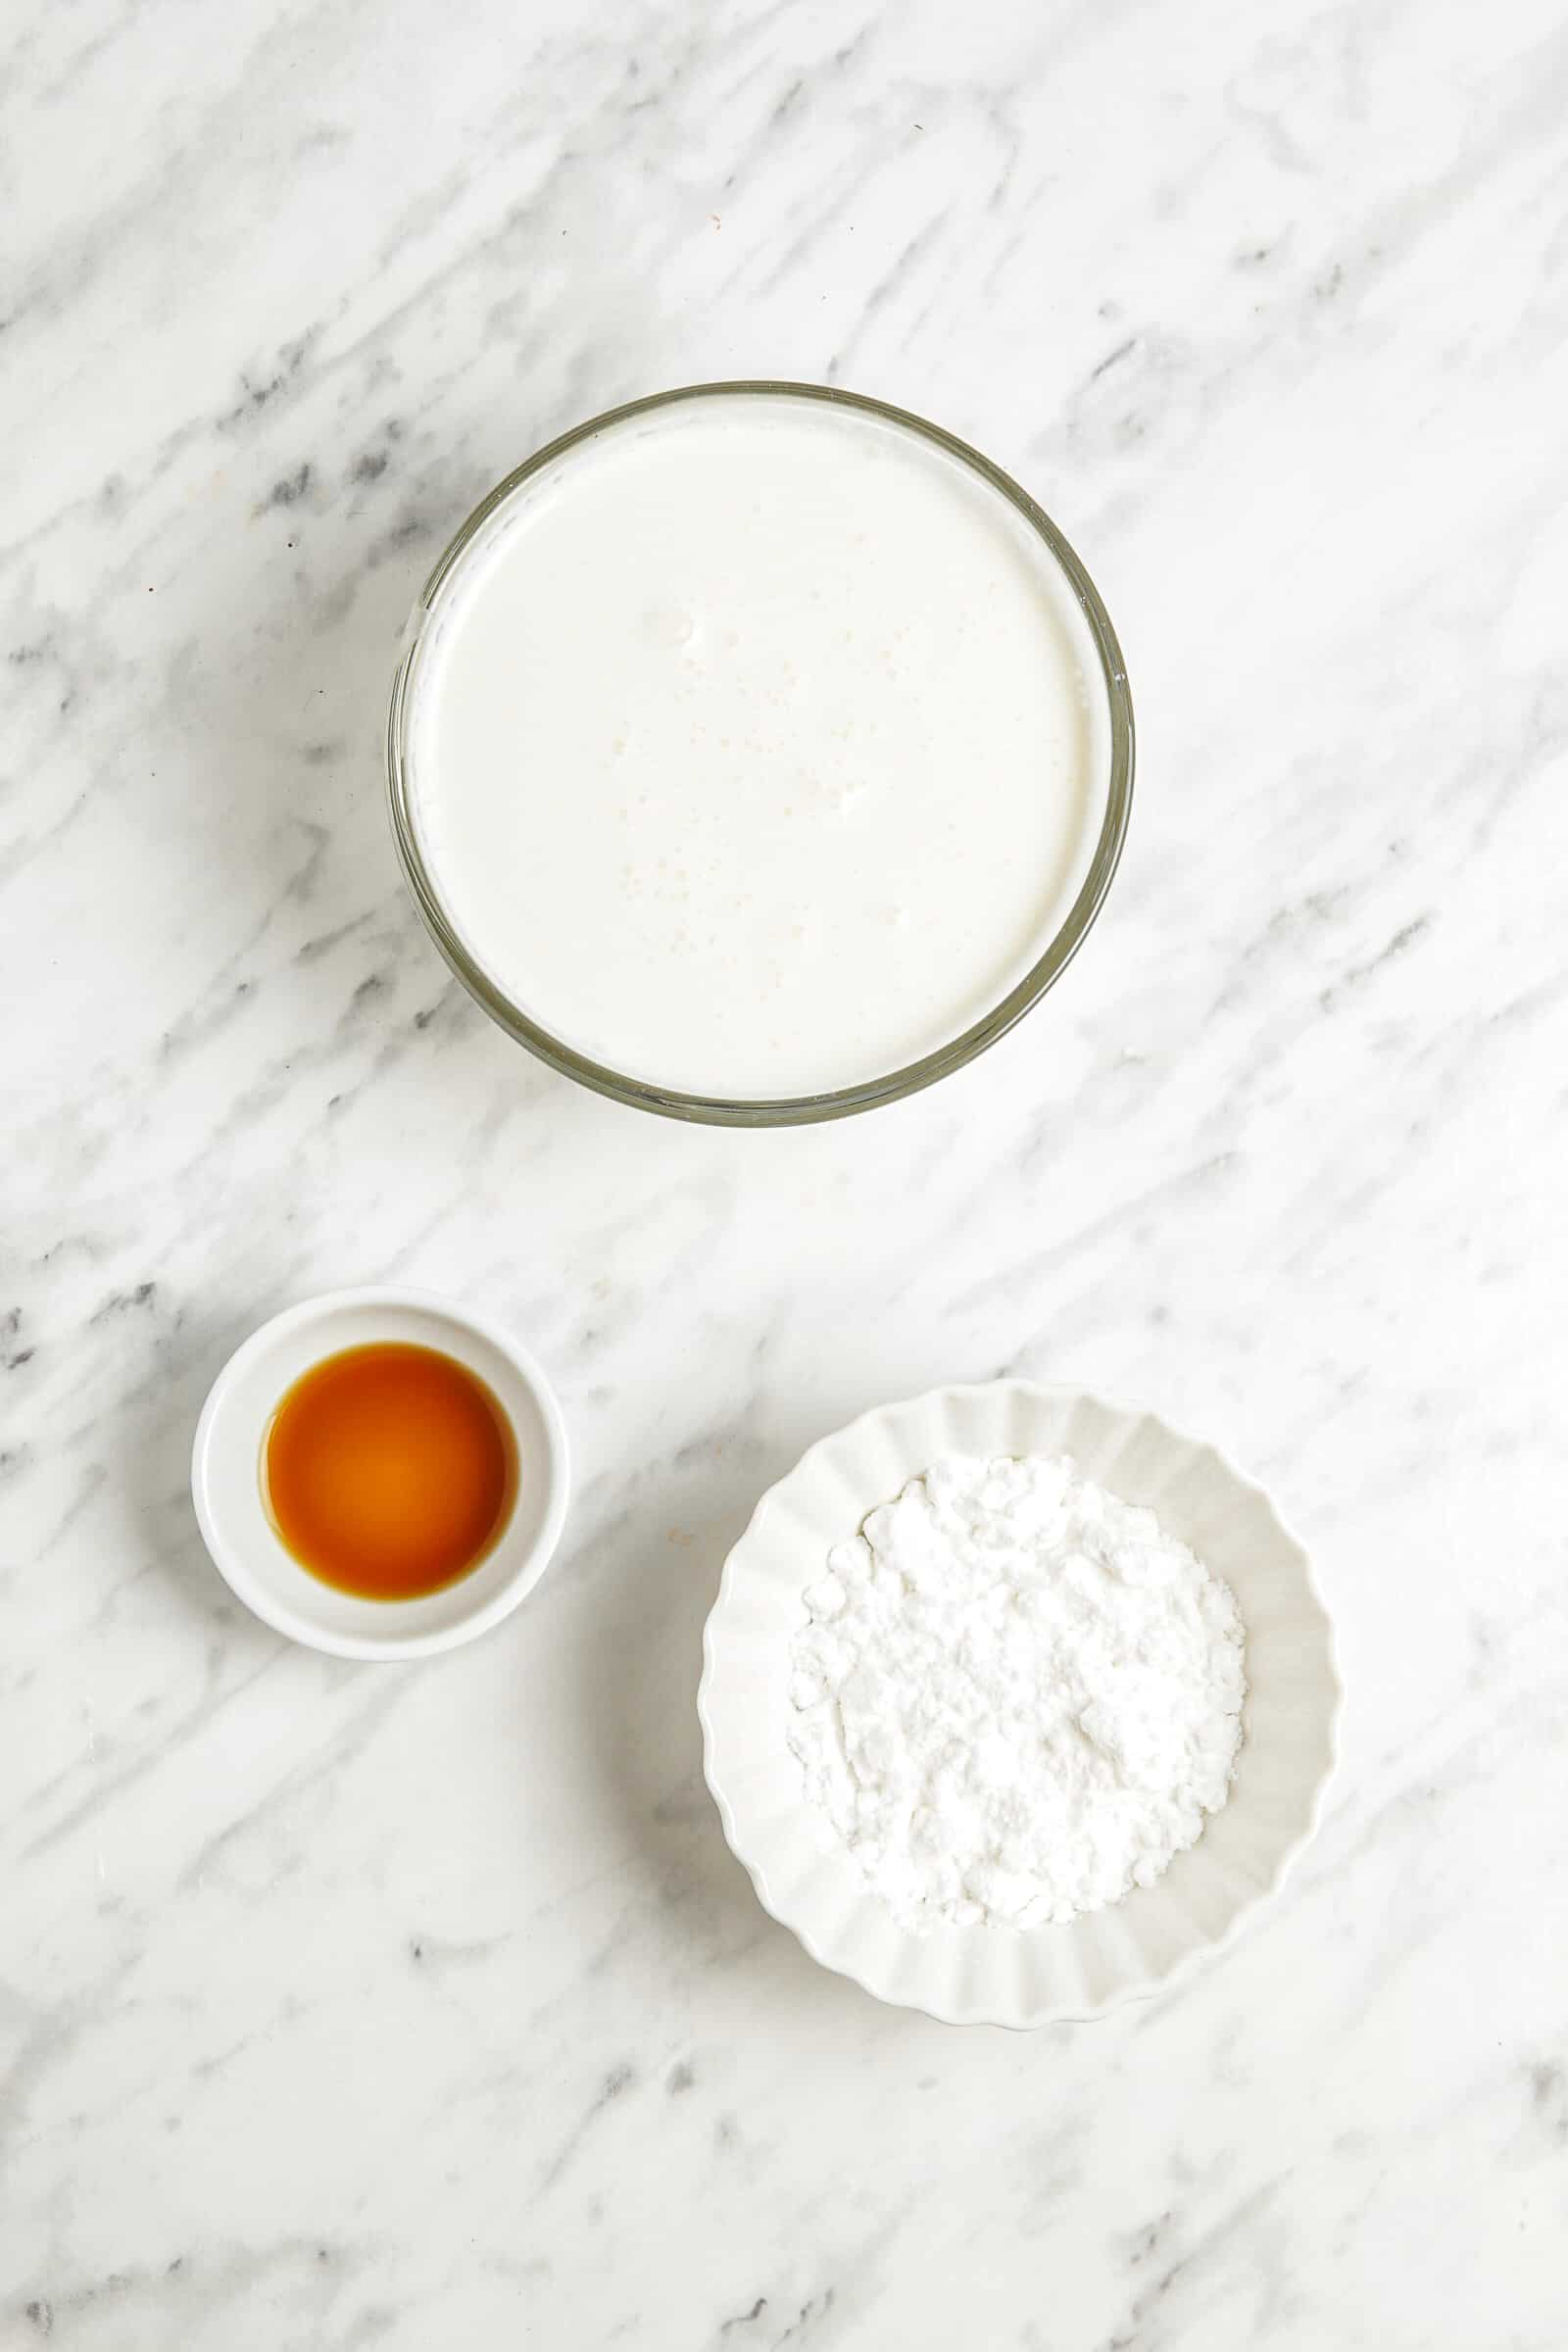 ingredients for whipped cream prepped in small bowls